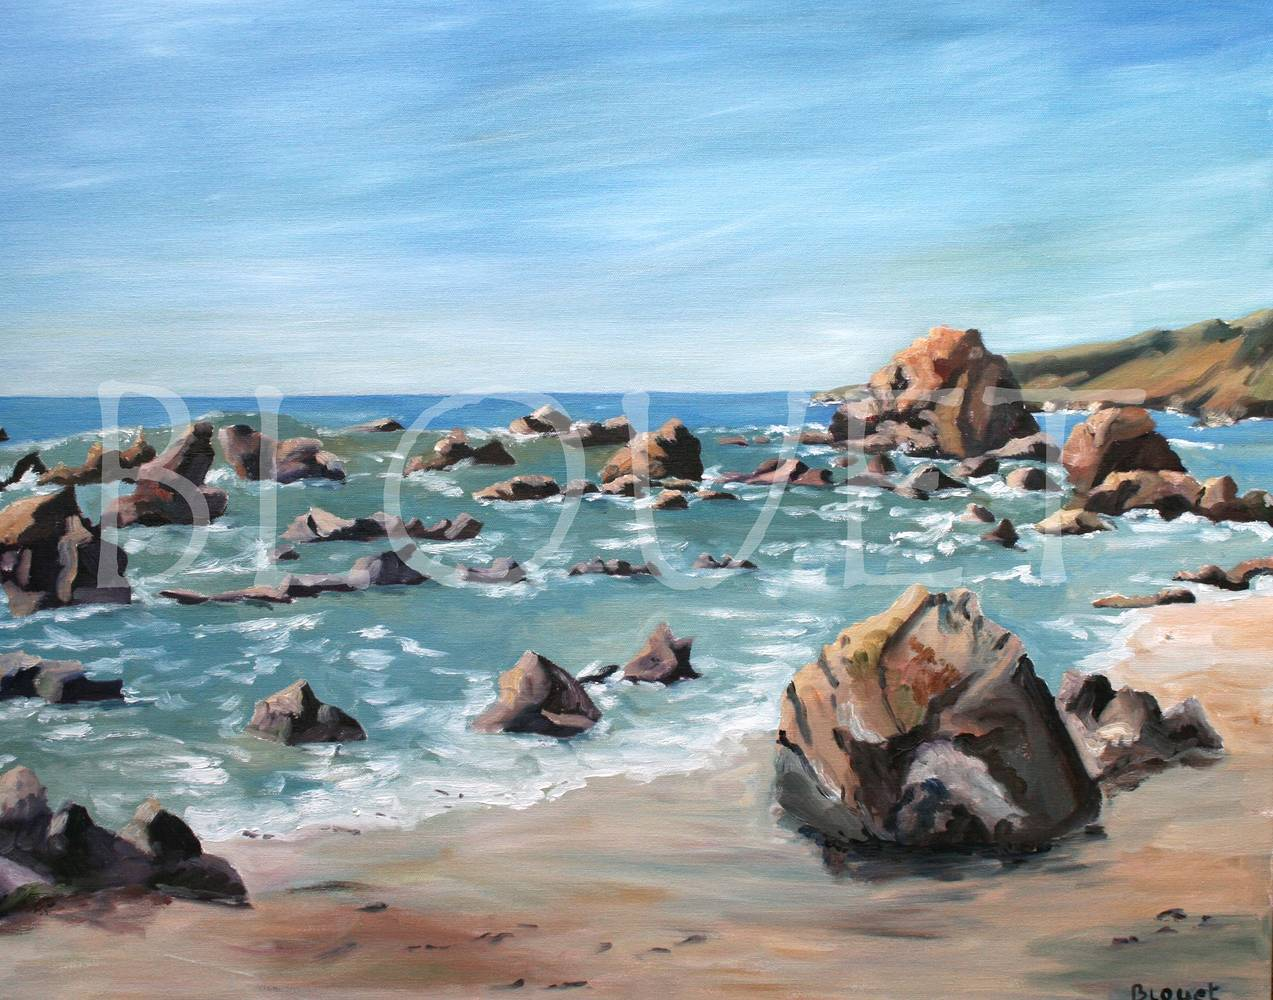 Oil painting Sonoma Coast 1 by Sophie Dassonville